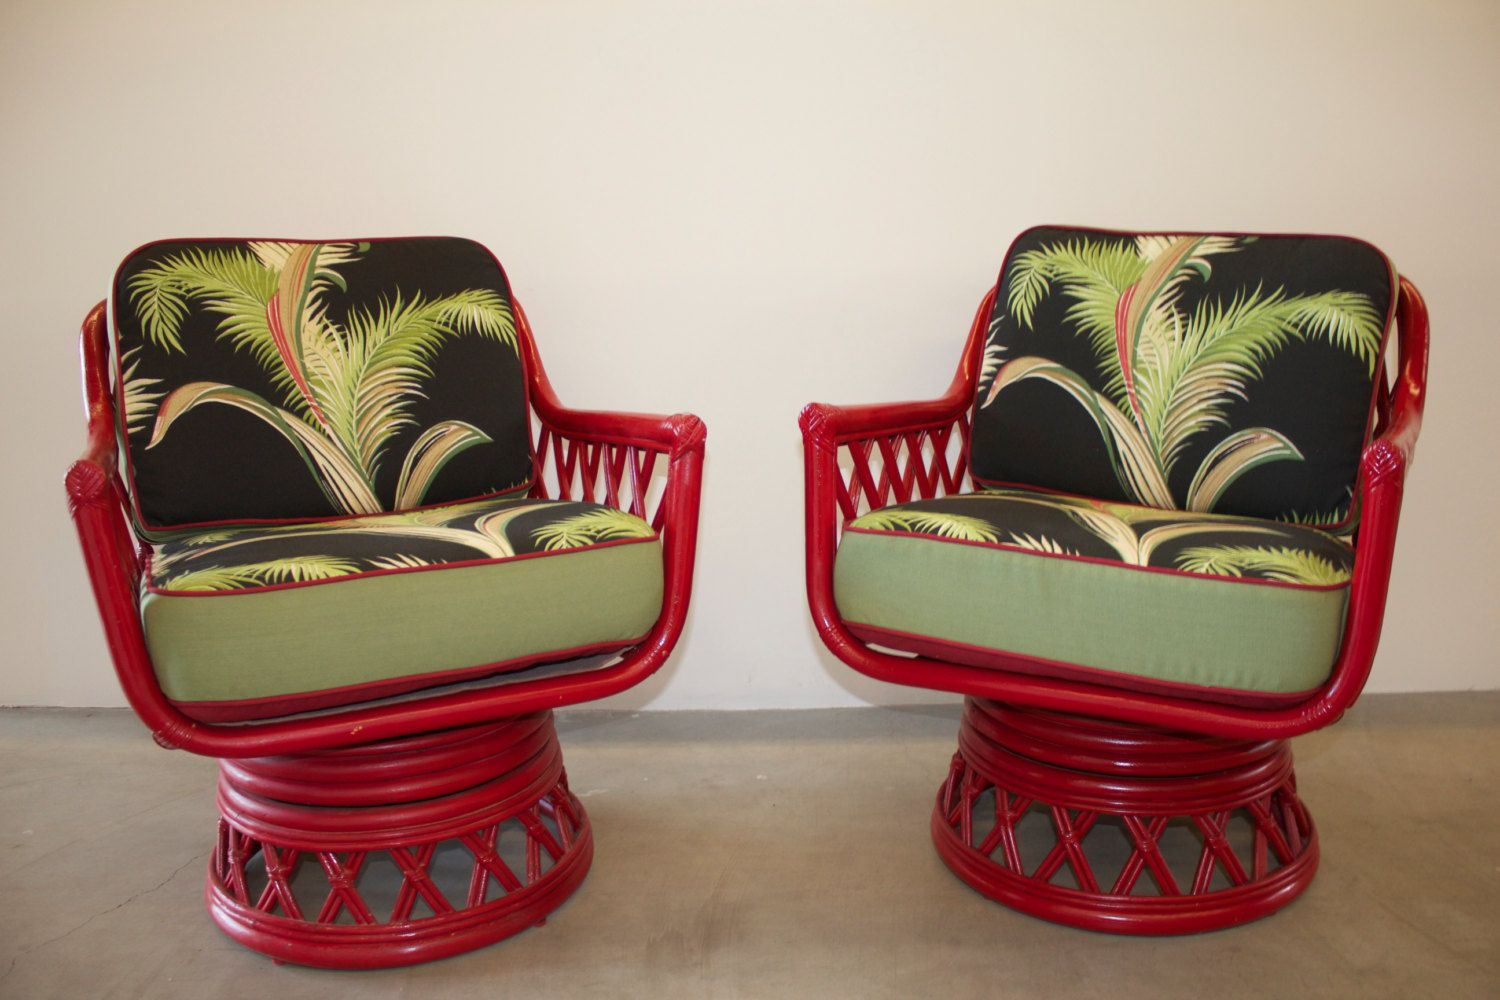 Rattan Swivel Chairs With 1940s Vintage Tropical Barkcloth Fabric Cushions By Glorymagnoliacouture On Etsy Tropical Furniture Swivel Chair Rattan